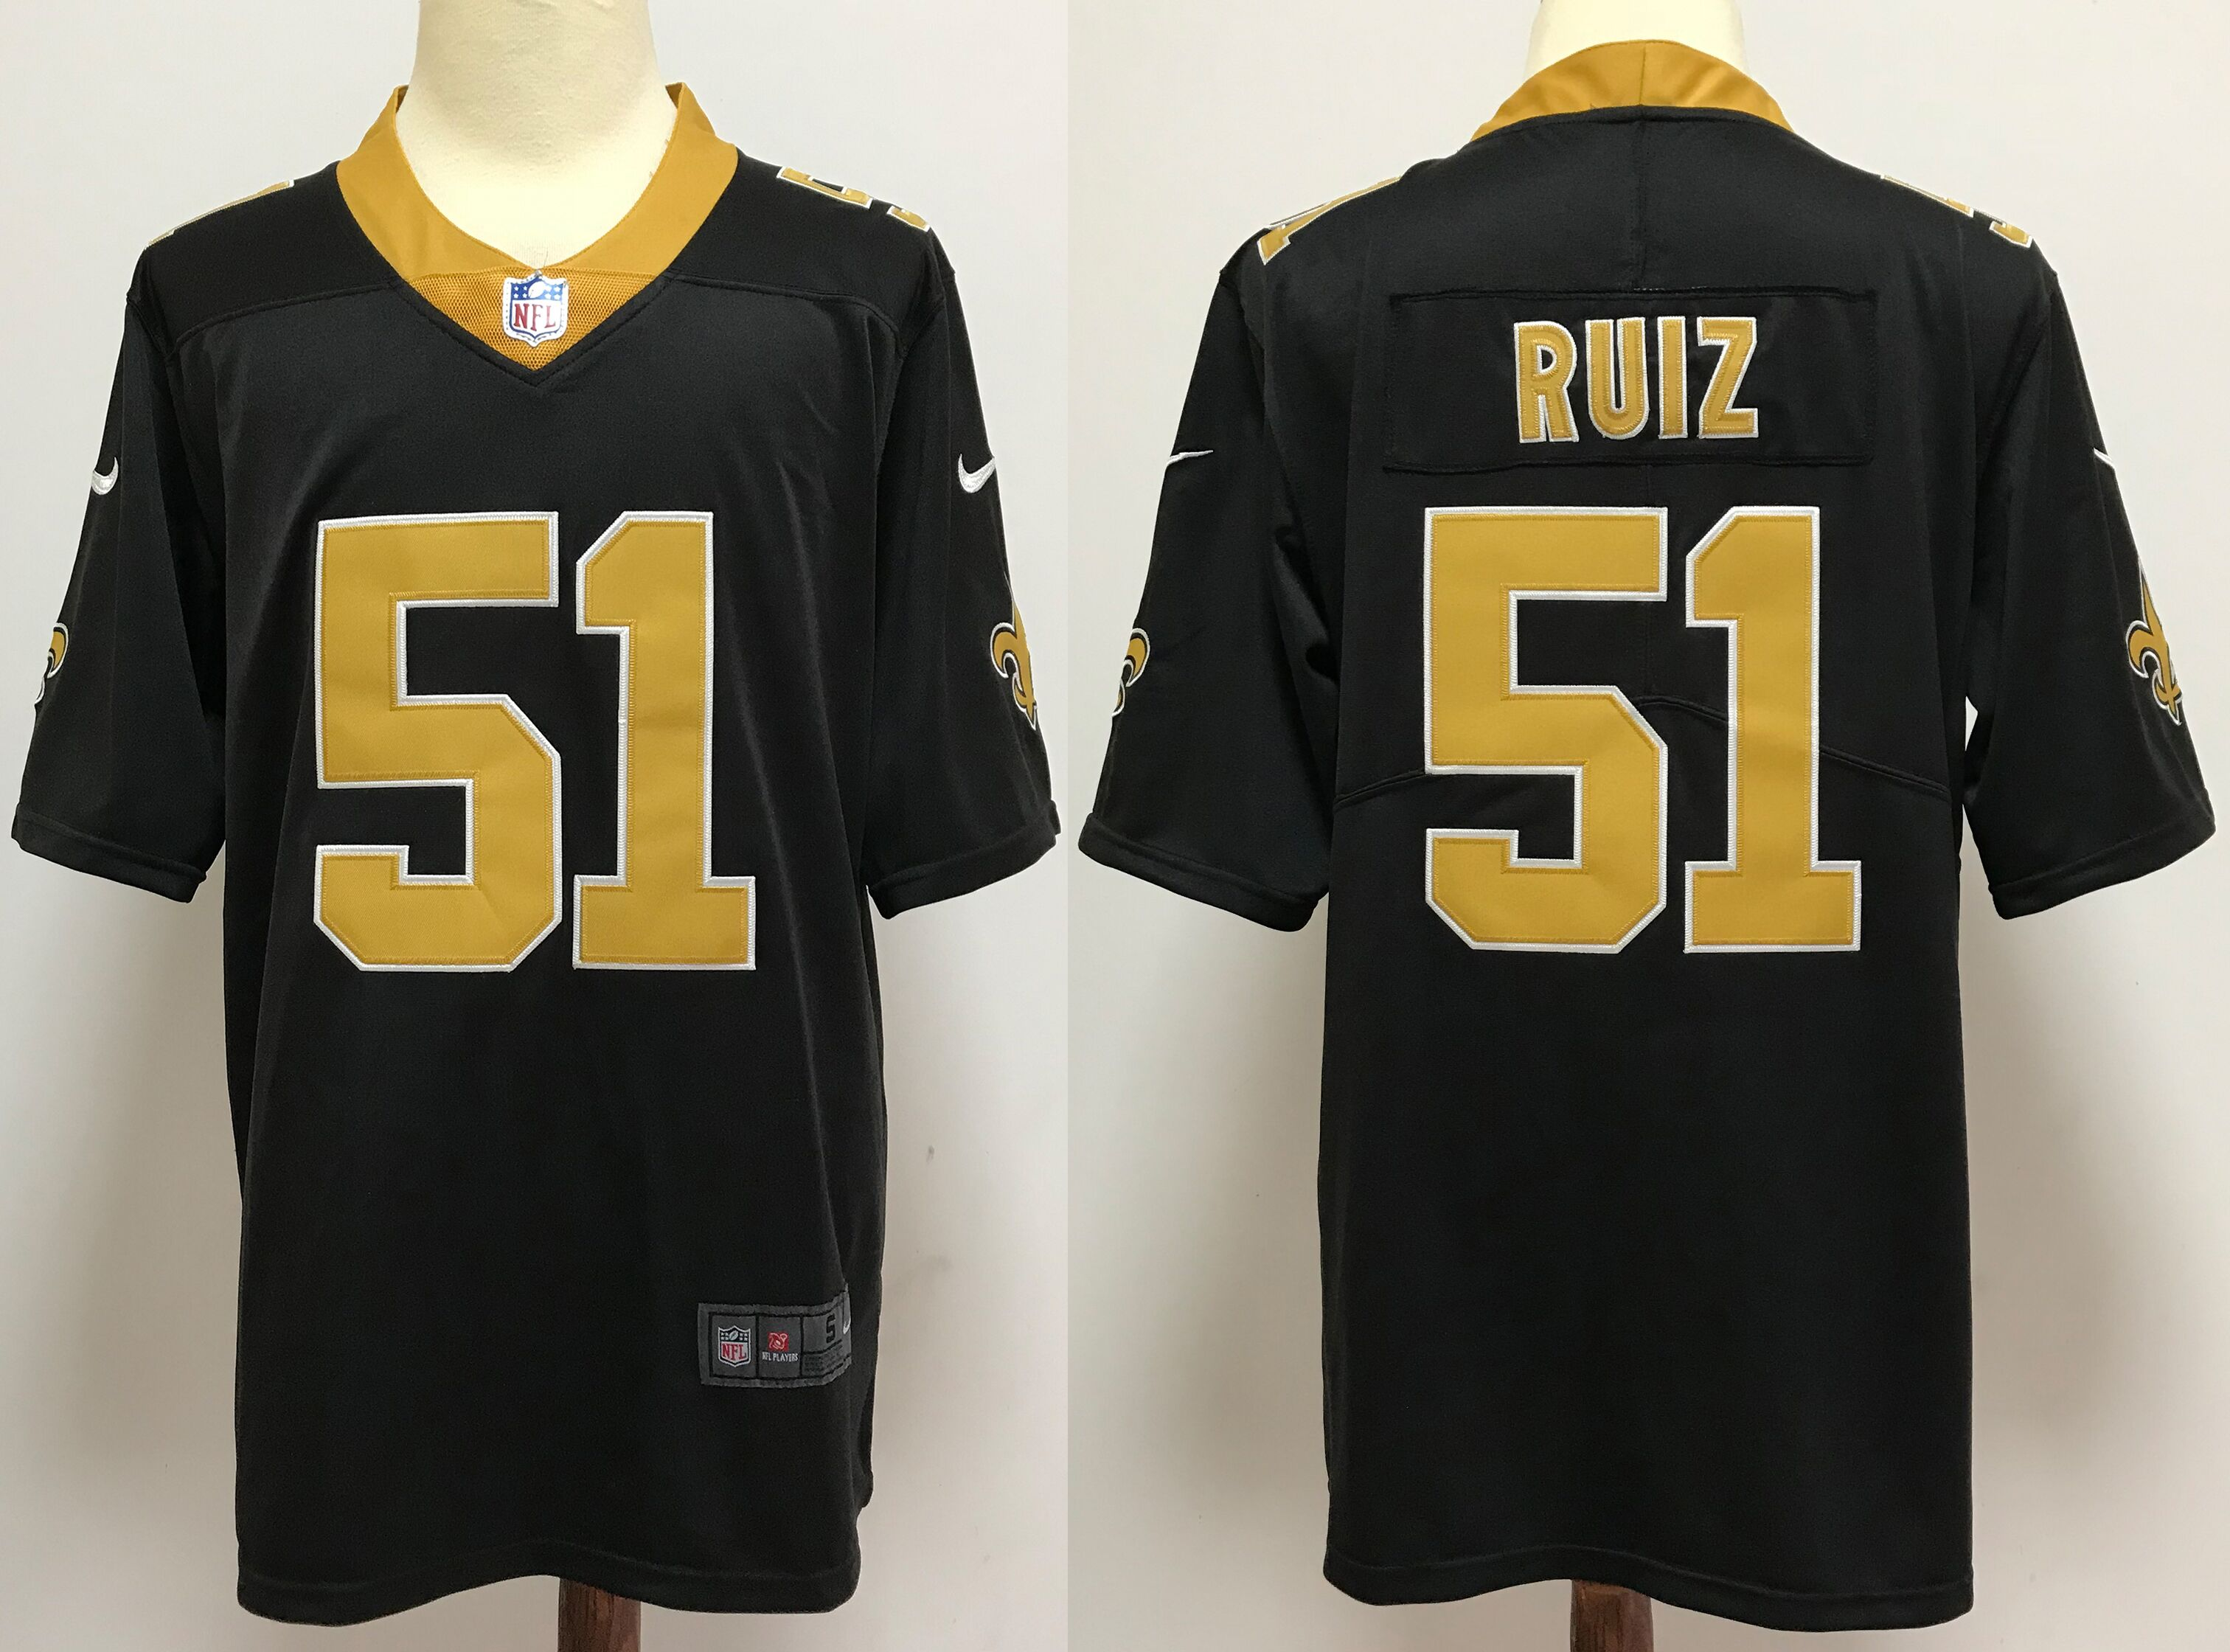 Men NFL New Orleans Saints 51 Ruiz black Nike jerseys